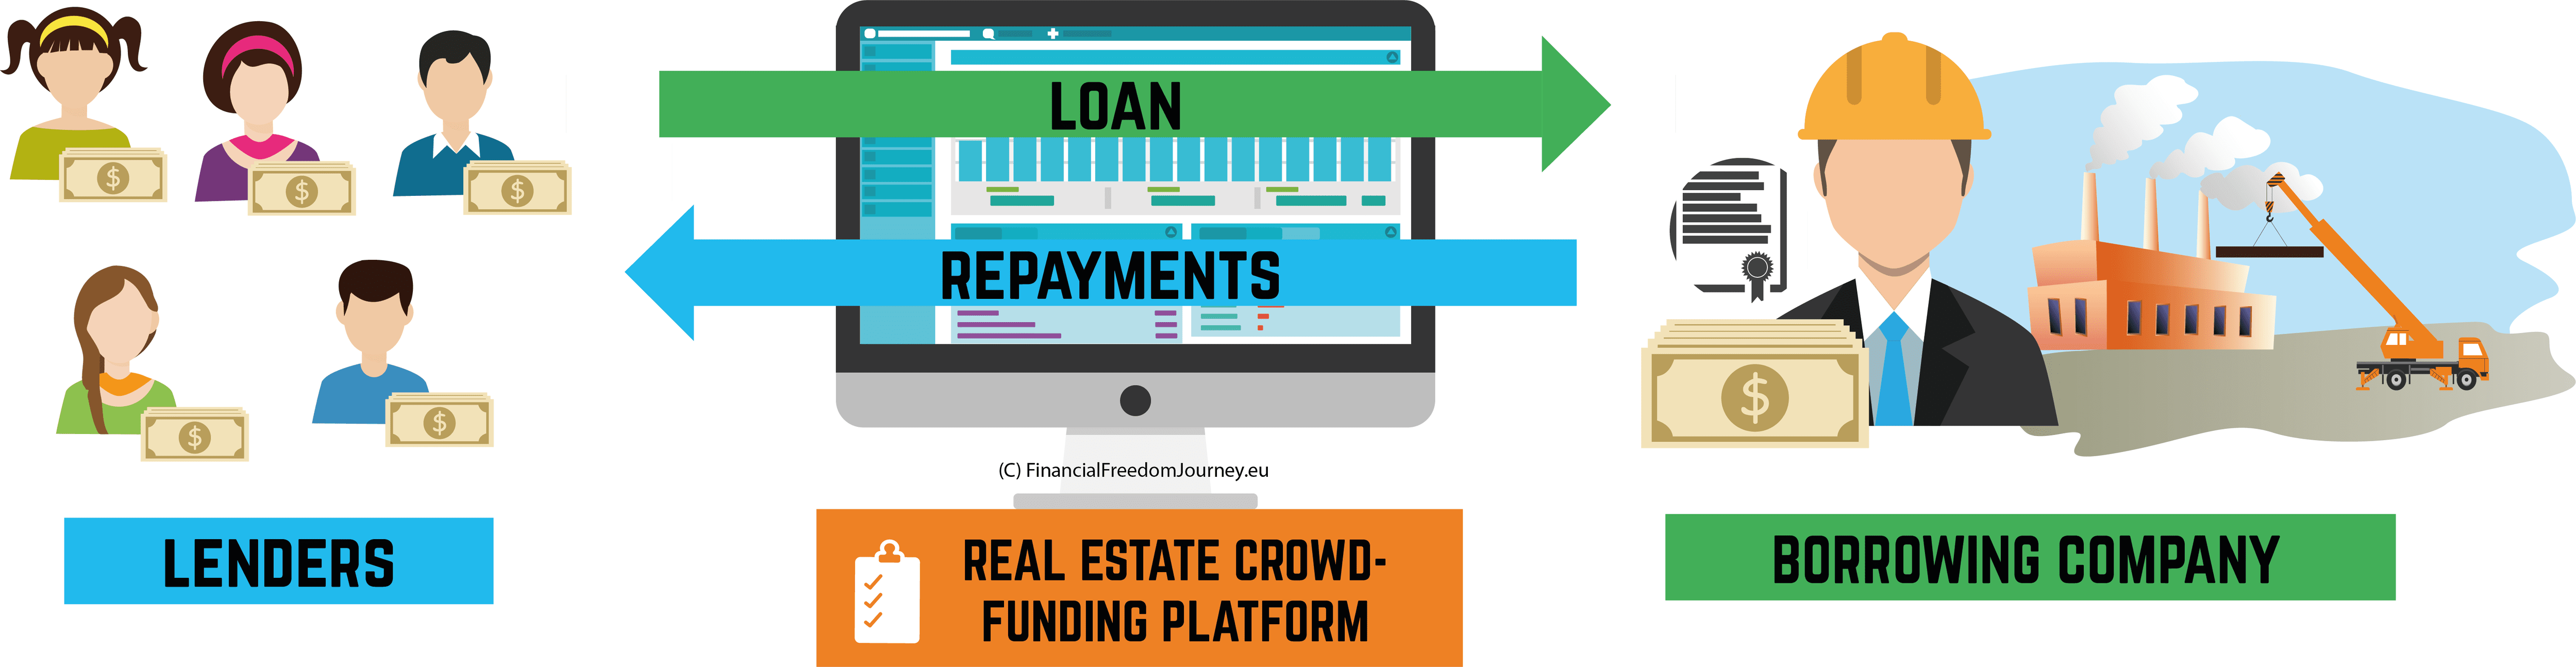 Real Estate Crowdfunding Explained